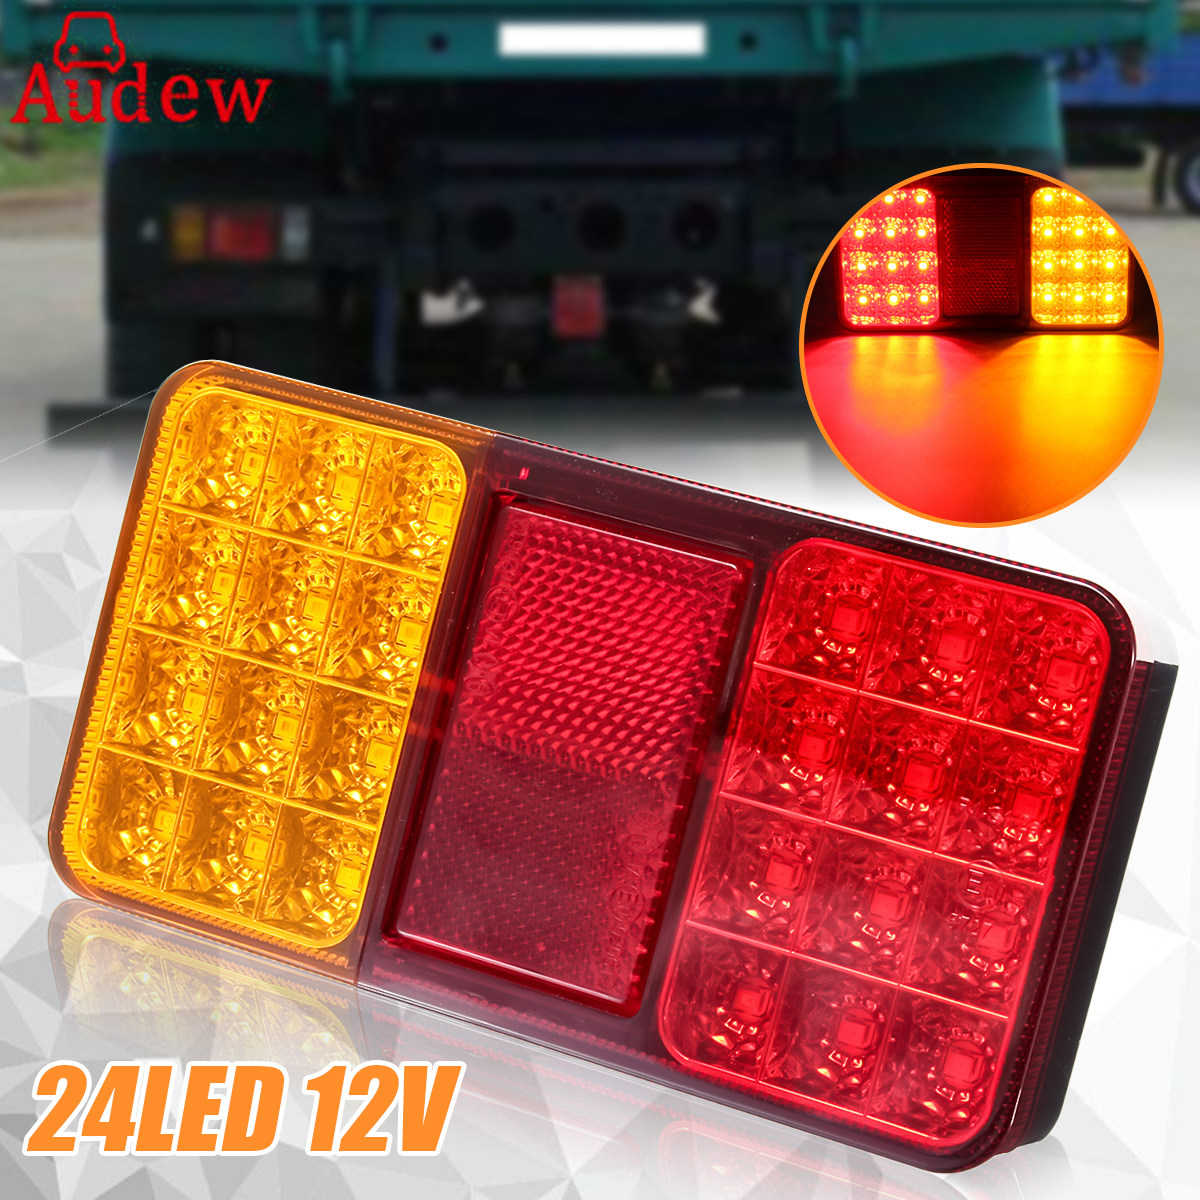 24LED 12V Trailer Truck Rear Lights Brake Stop Tail Turn Indicator LED Lamps For Car Trailers Trucks Utes Boats vehemo 12v 40 led truck car trailer rear tail light stop indicator turn signal lamp